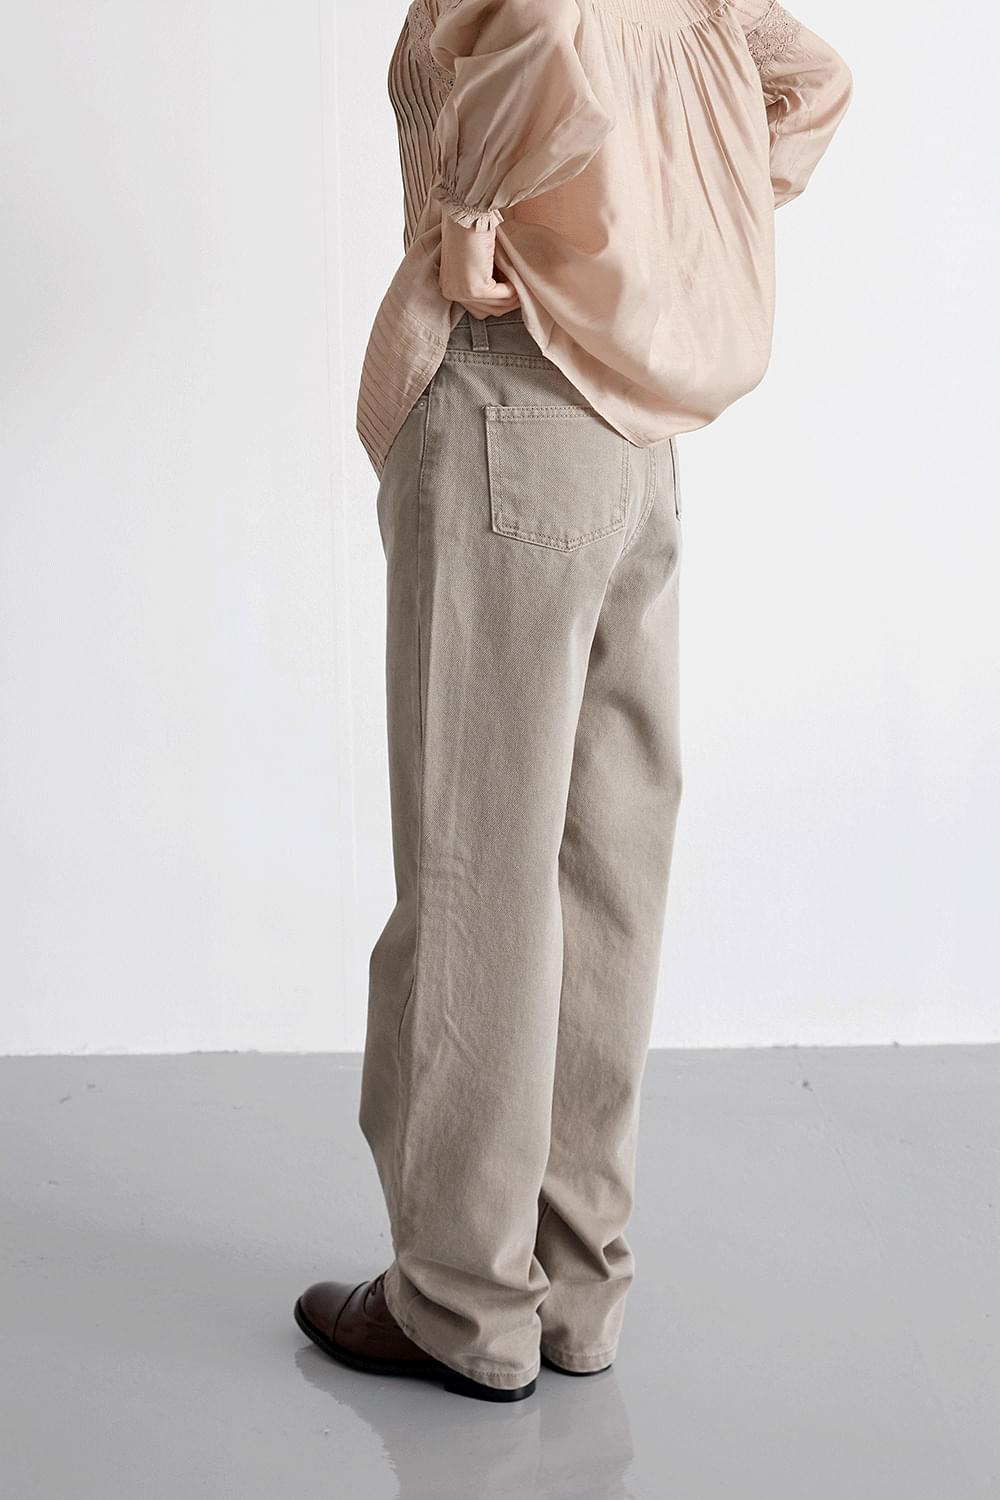 washed sand pants (2colors)